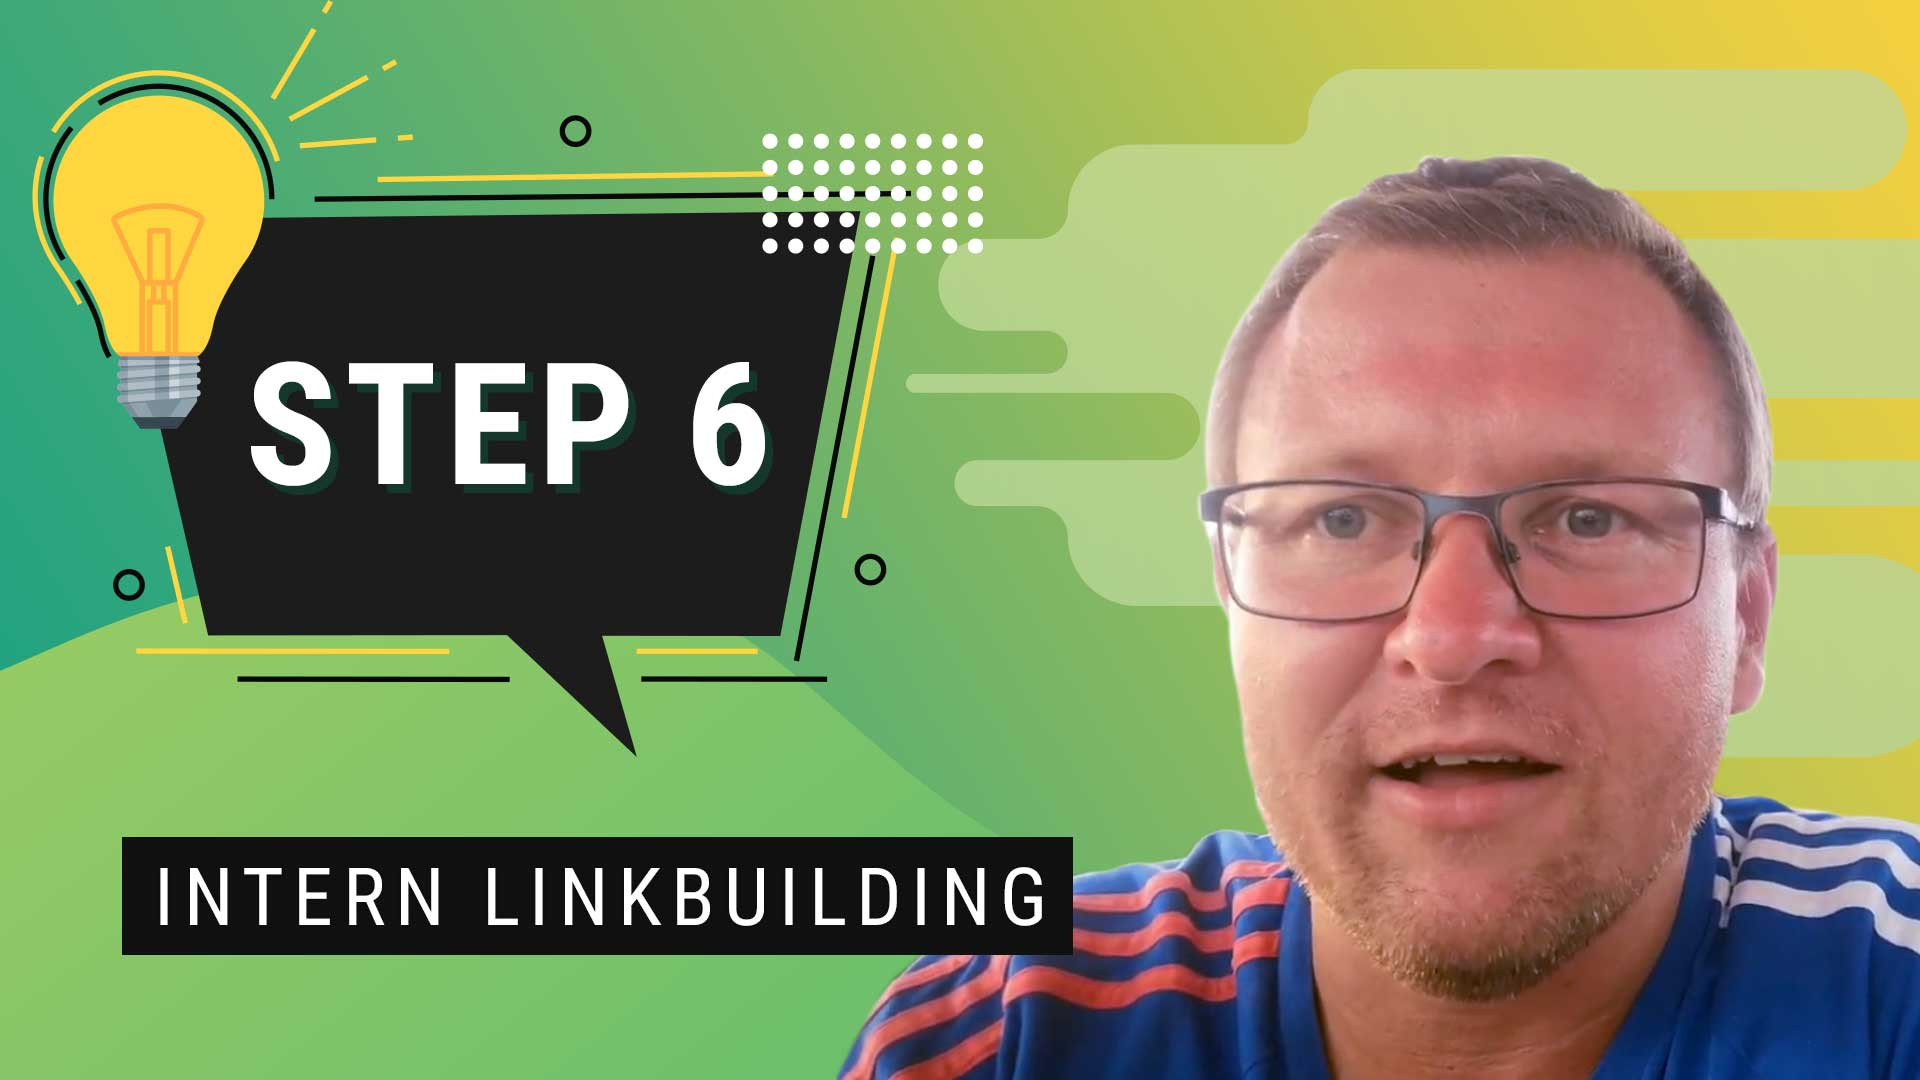 Intern linkbuilding